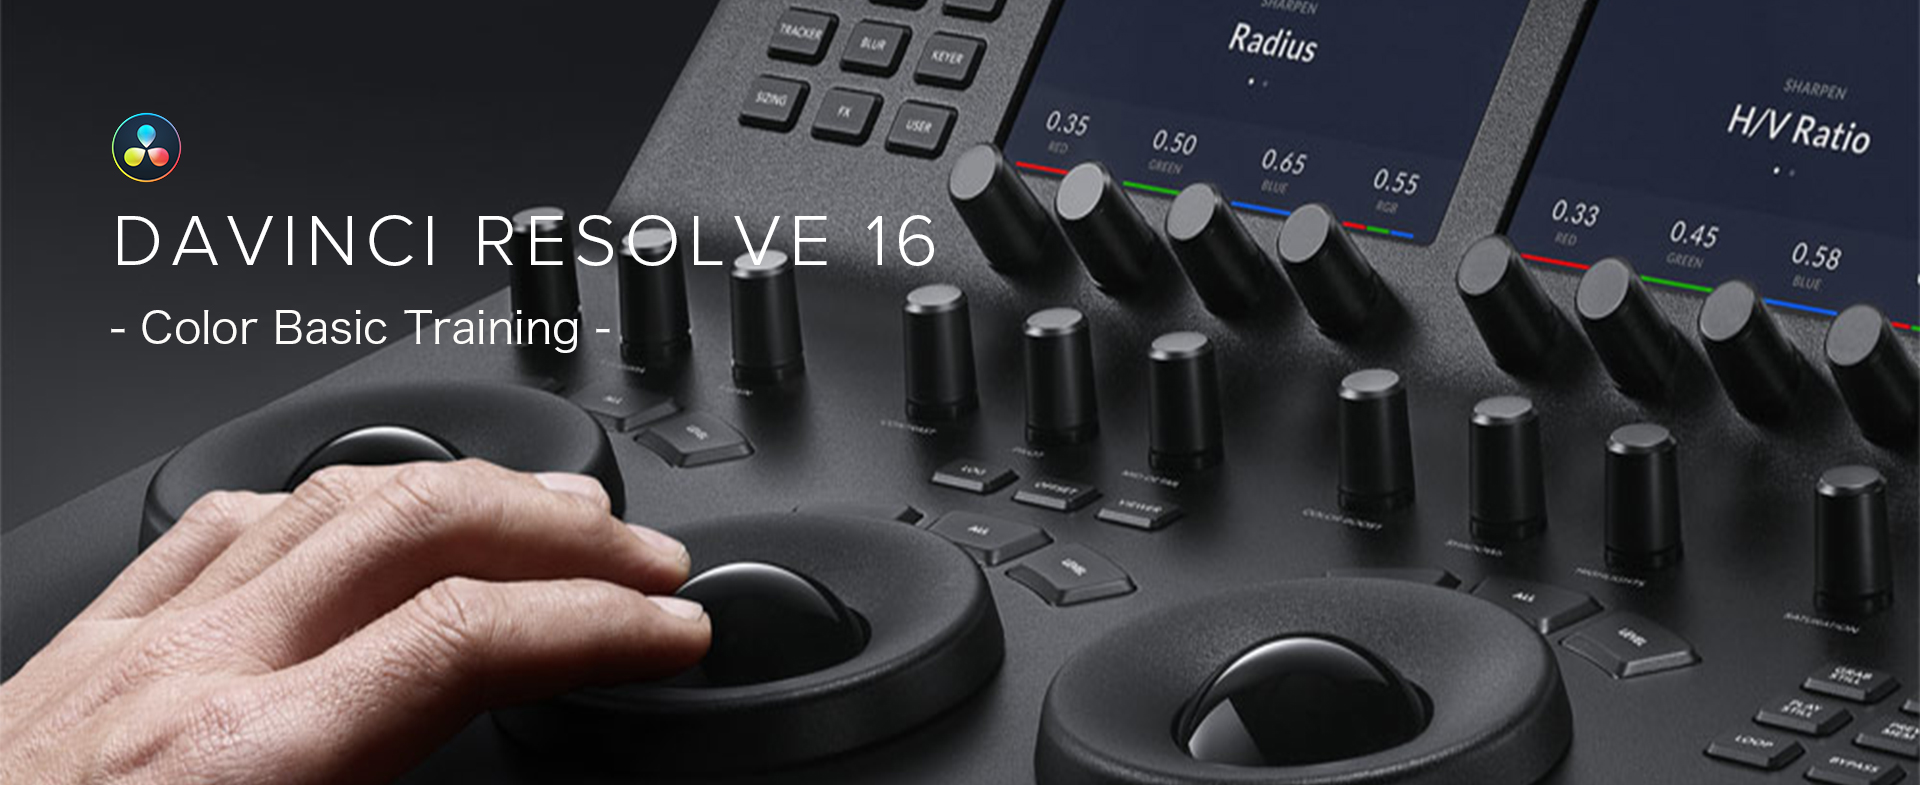 DaVinci Resolve 16 - Color Basic Training